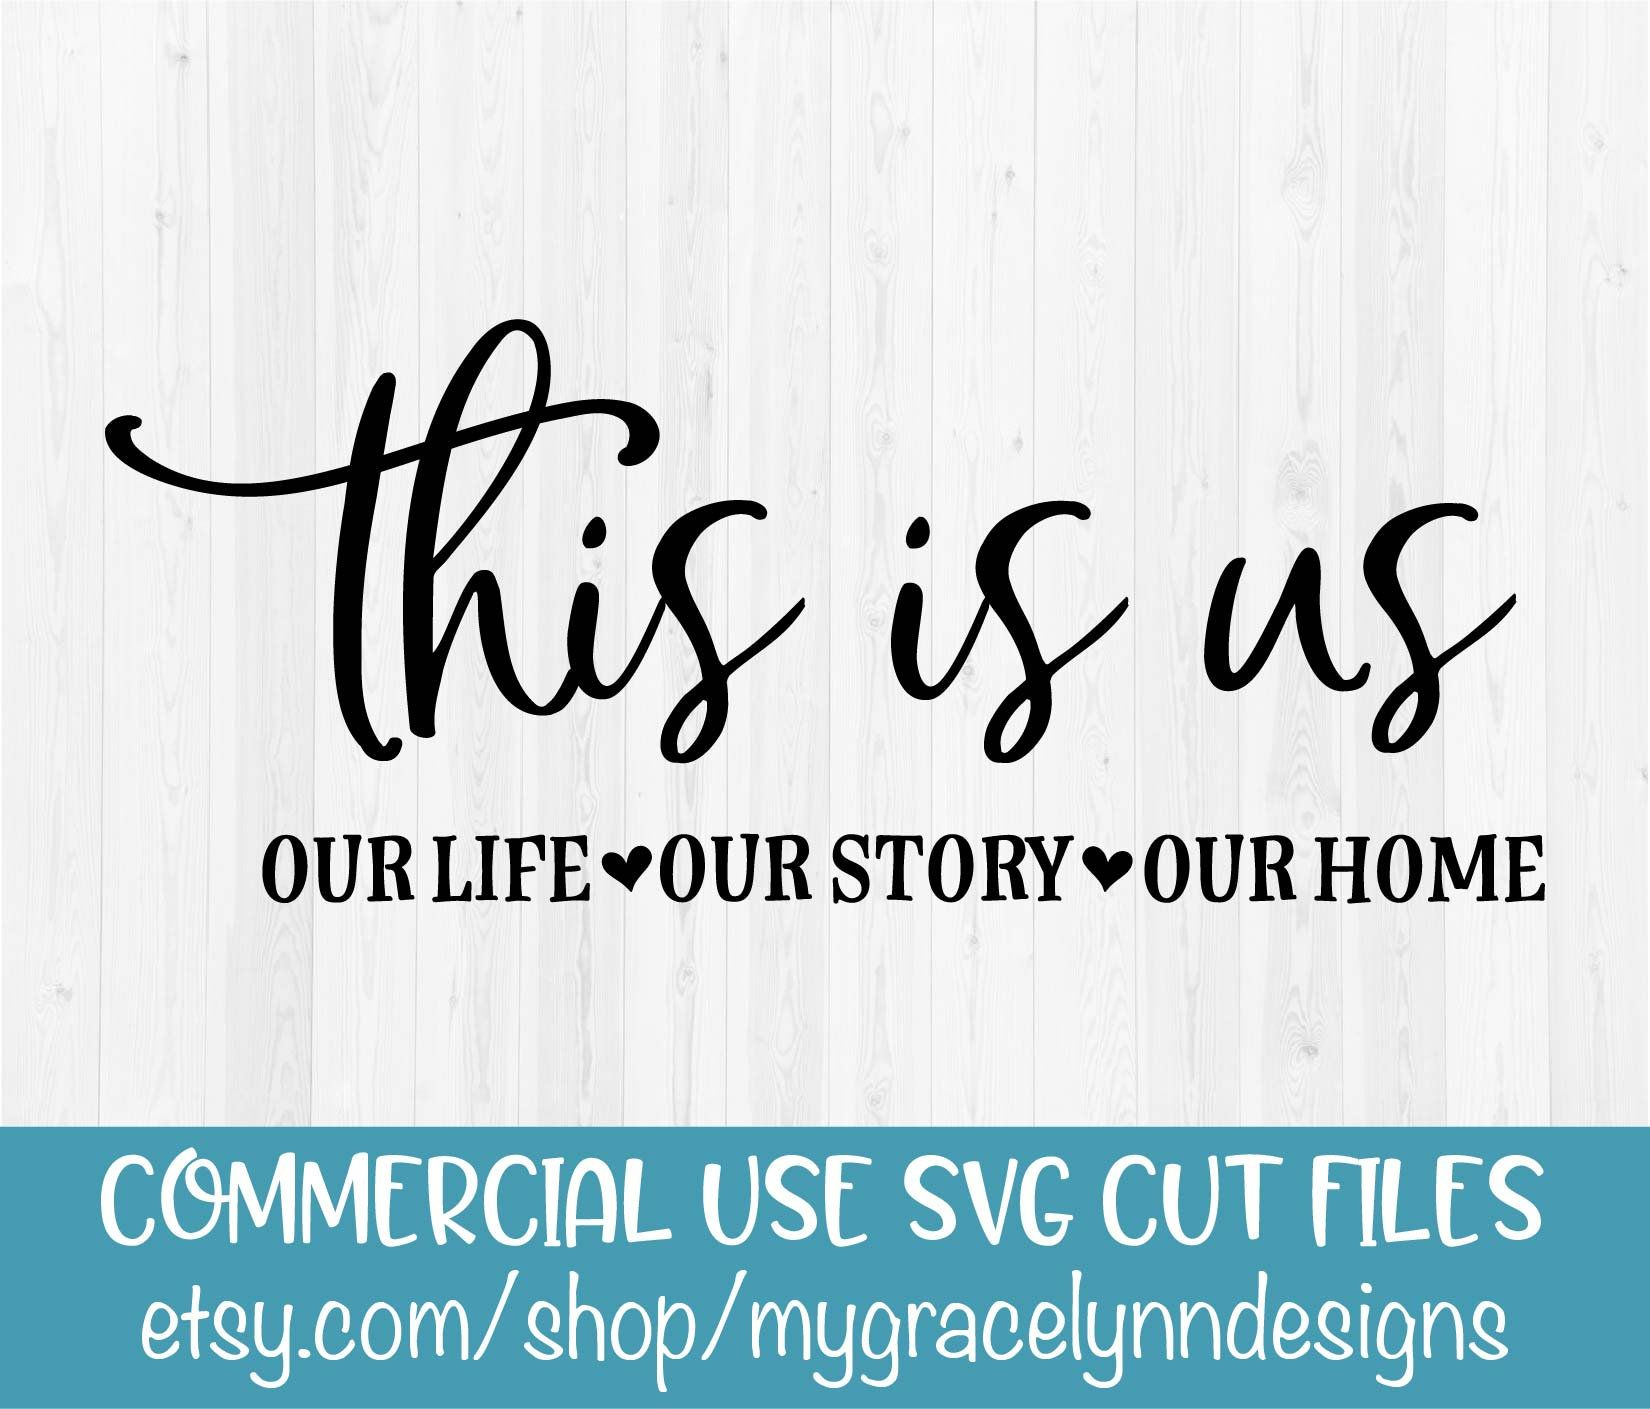 Our Home From Scratch: Our Life Our Story Our Home